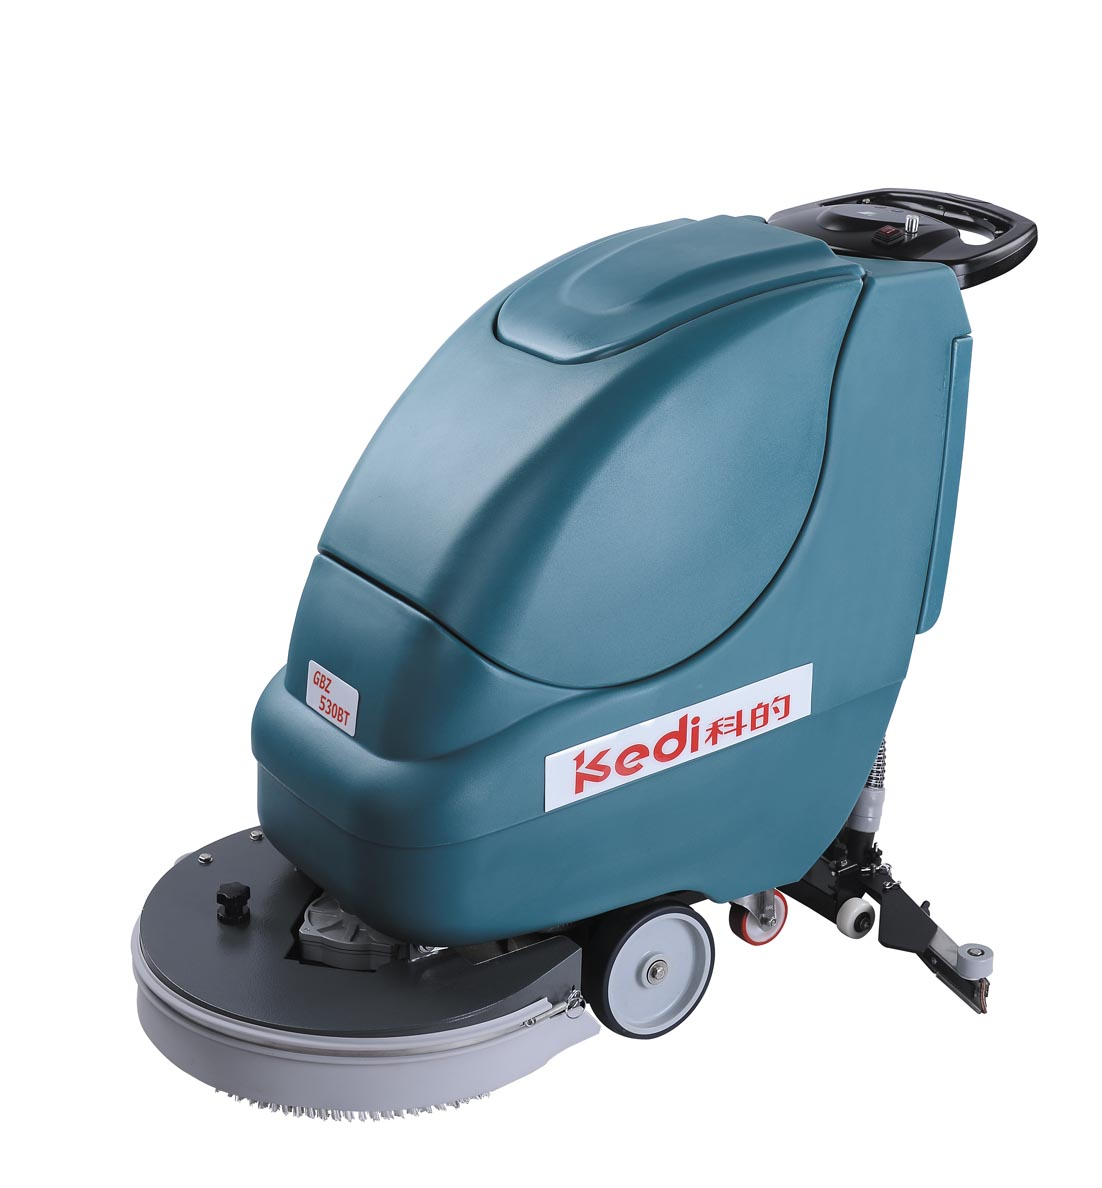 Multi function floor cleaning machine multi function floor multi function floor cleaning machine multi function floor cleaning machine suppliers and manufacturers at alibaba dailygadgetfo Choice Image